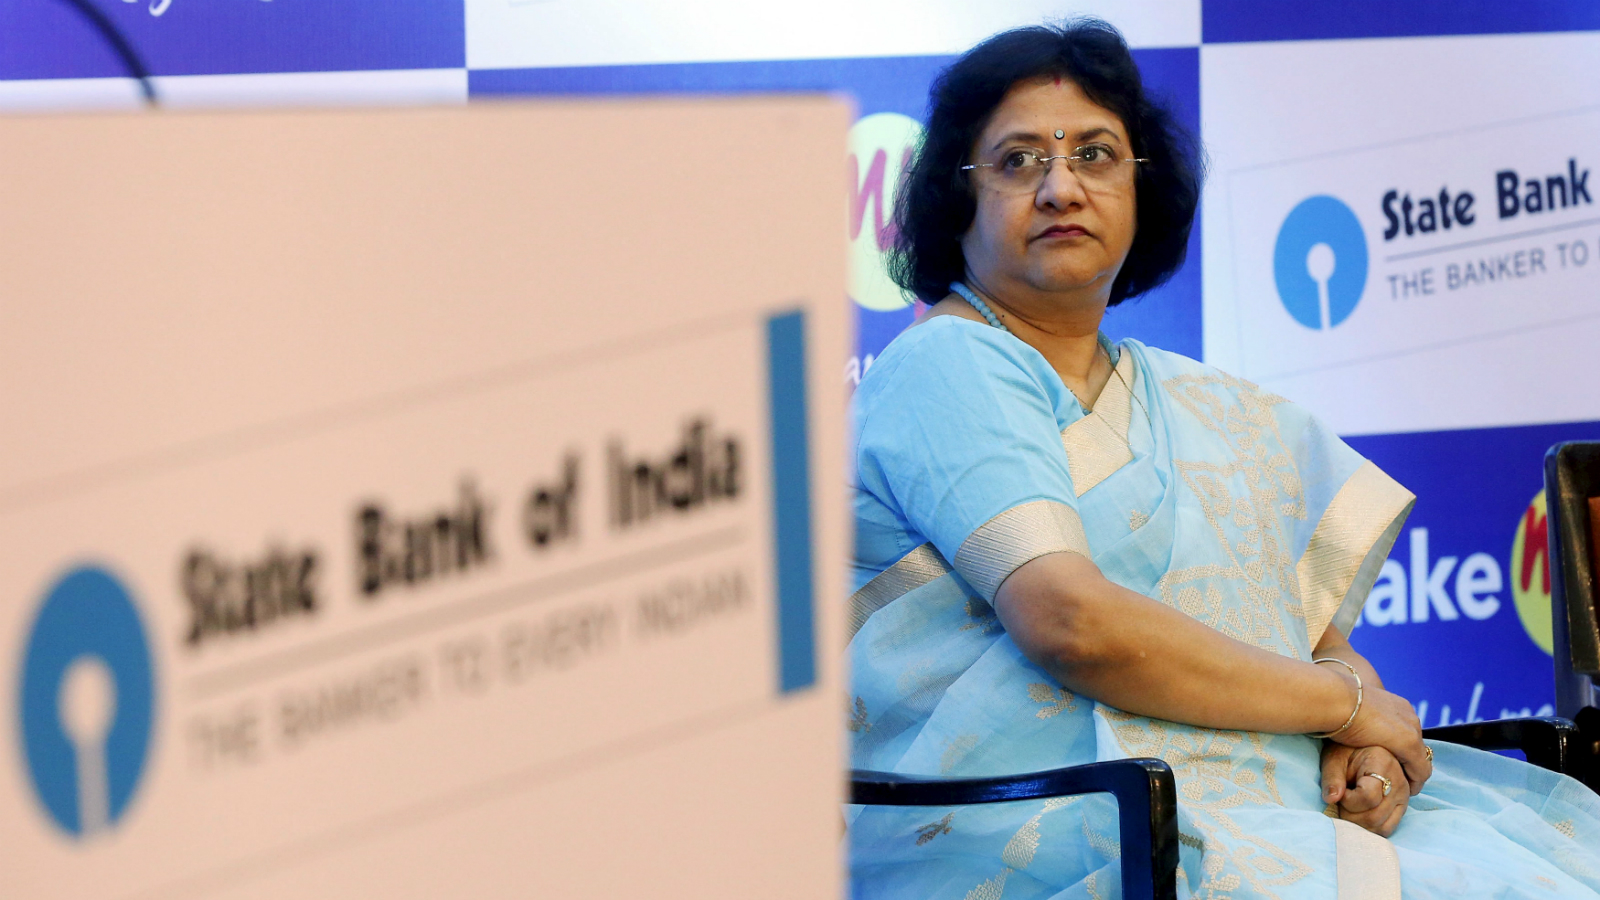 State Bank of India (SBI) chairwoman Arundhati Bhattacharya attends a news conference in Mumbai, India, June 30, 2015. REUTERS/Shailesh Andrade